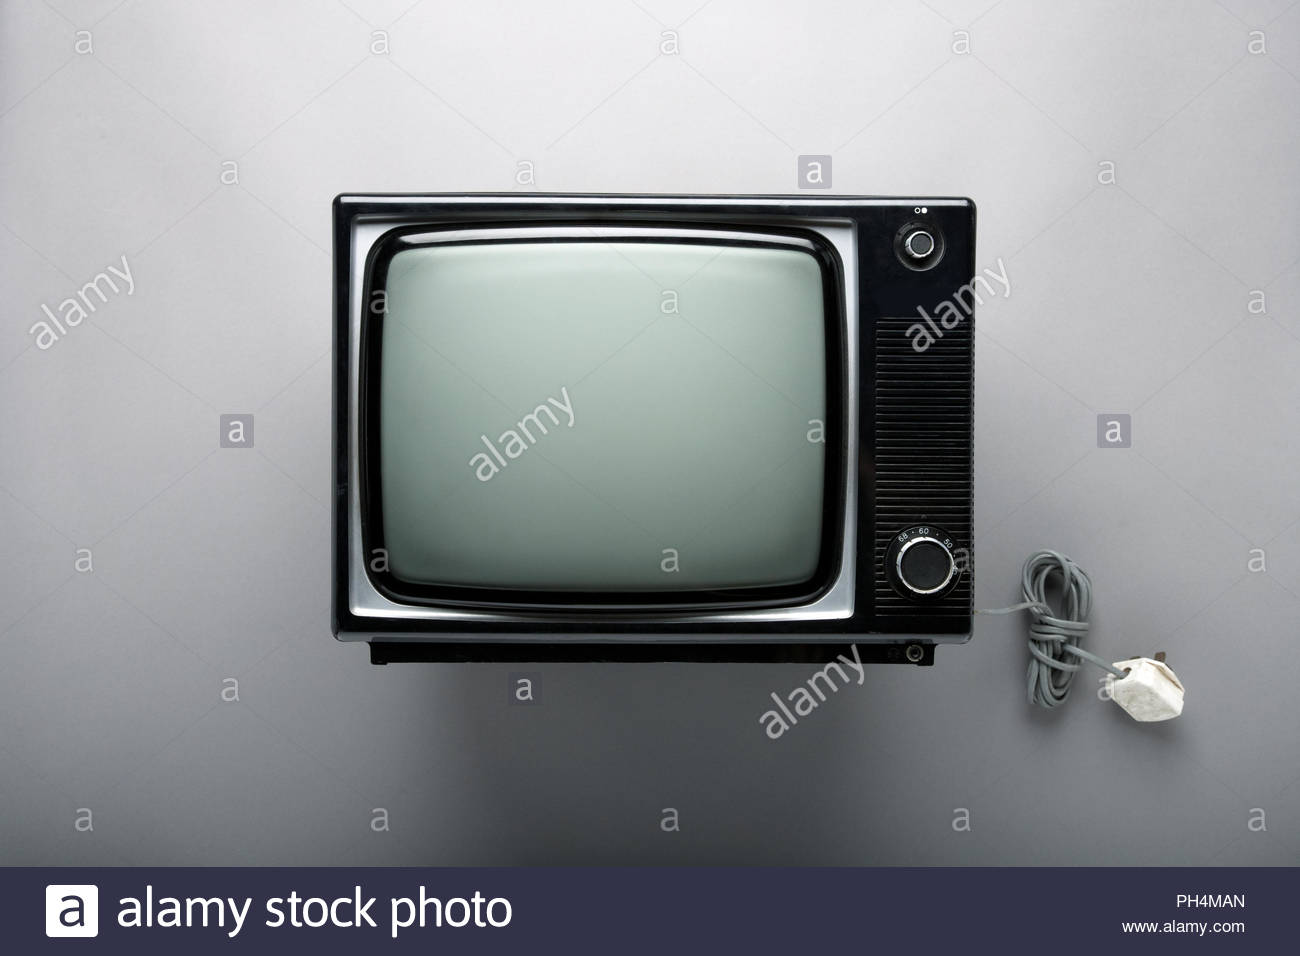 Old television set - Stock Image